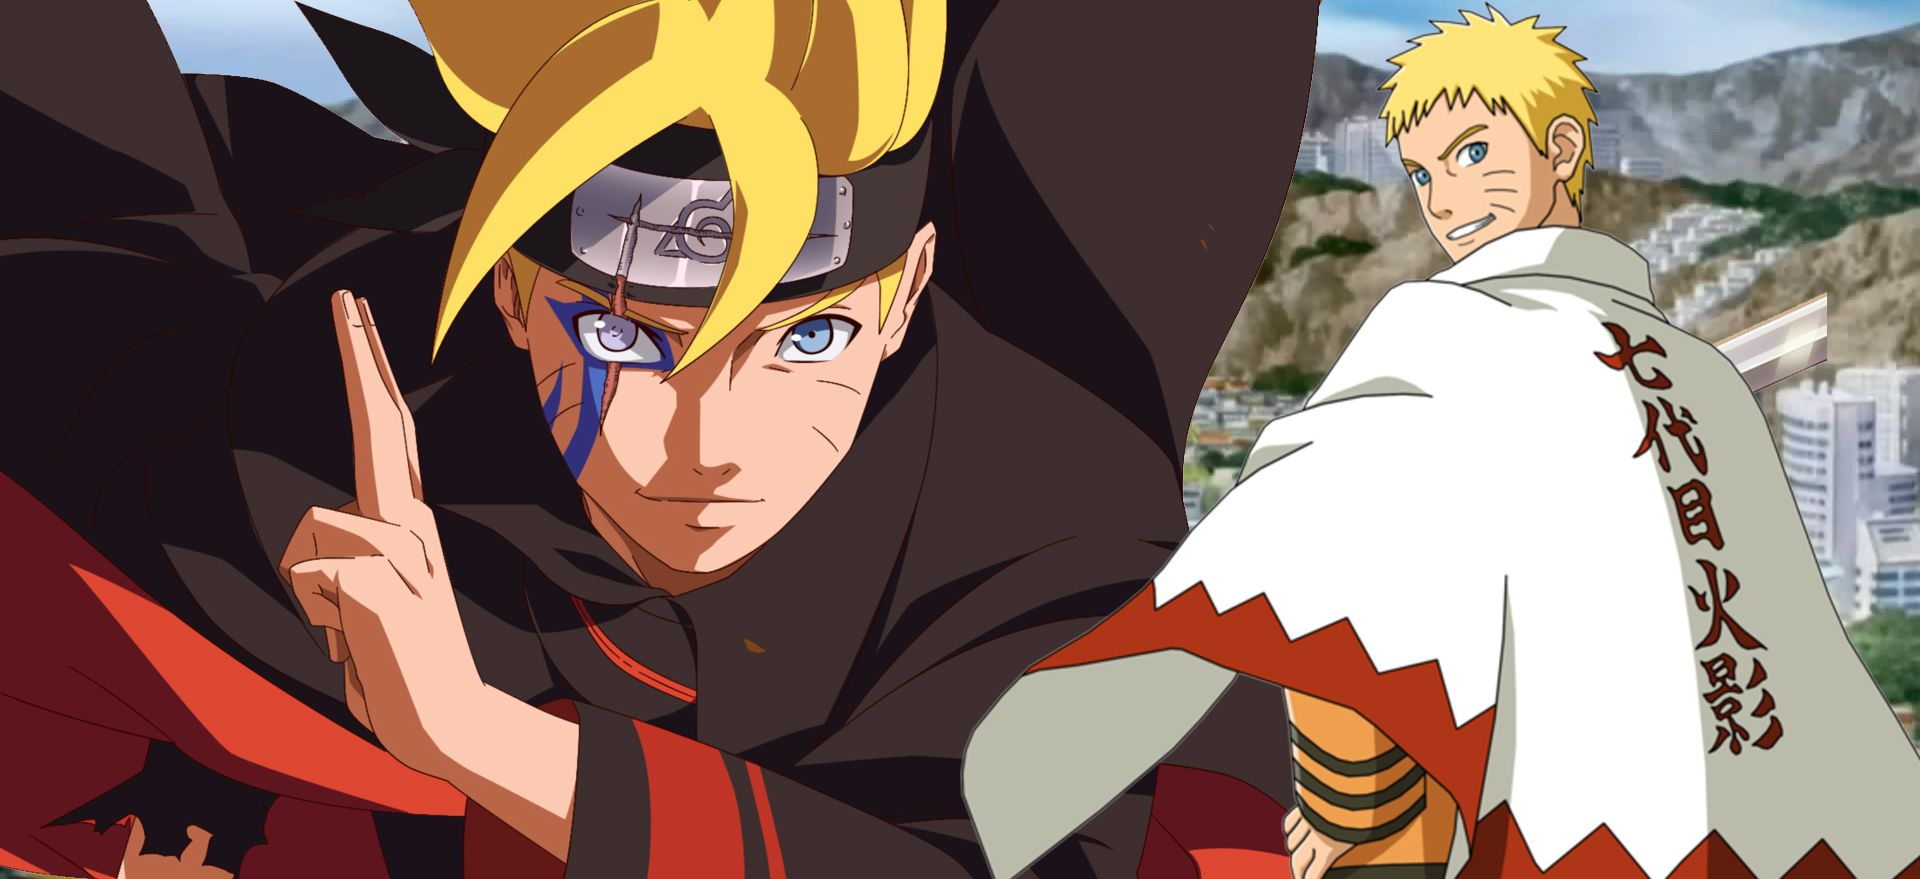 15 Boruto Characters Stronger Than Naruto (And 15 Way Weaker)